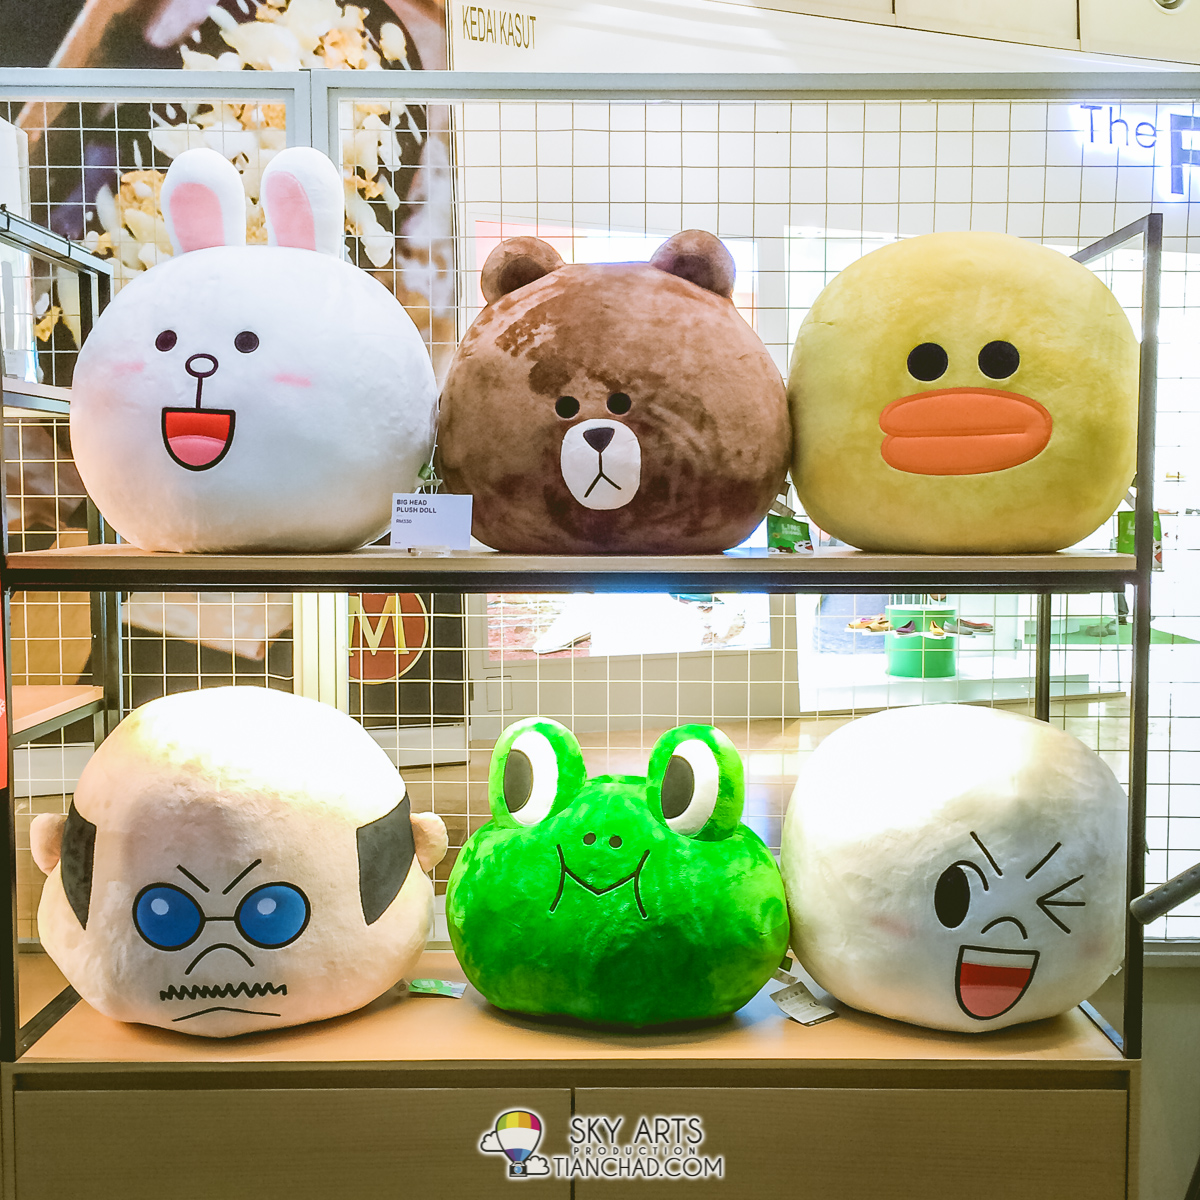 LINE huge size Plush Doll at LINE Friends Pop-Up Store